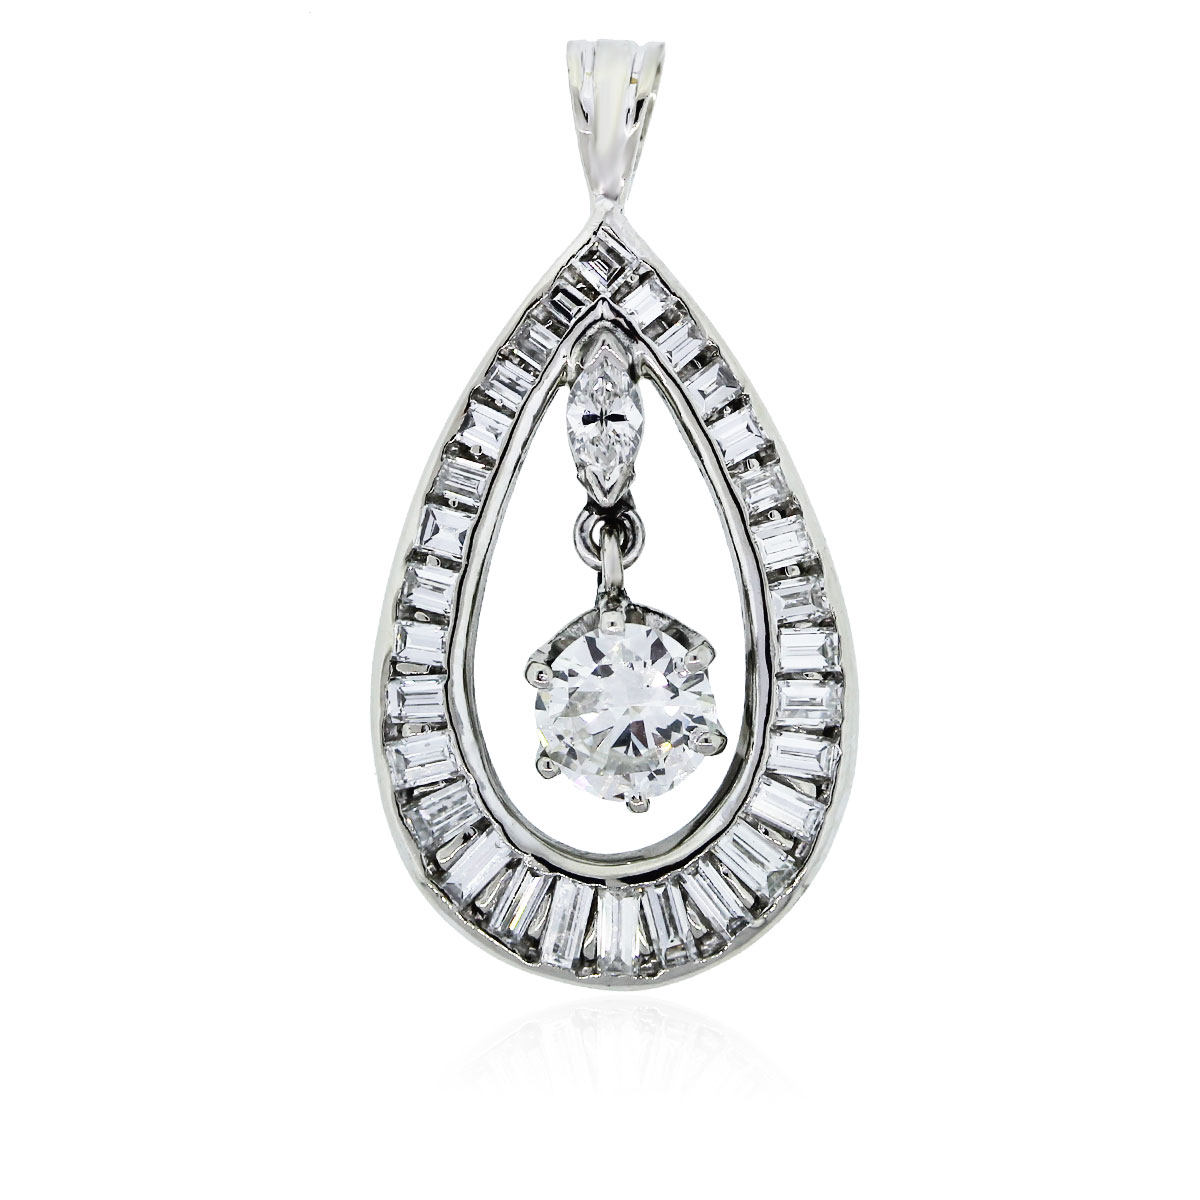 You are viewing this White Gold Diamond Pear Shaped Pendant!